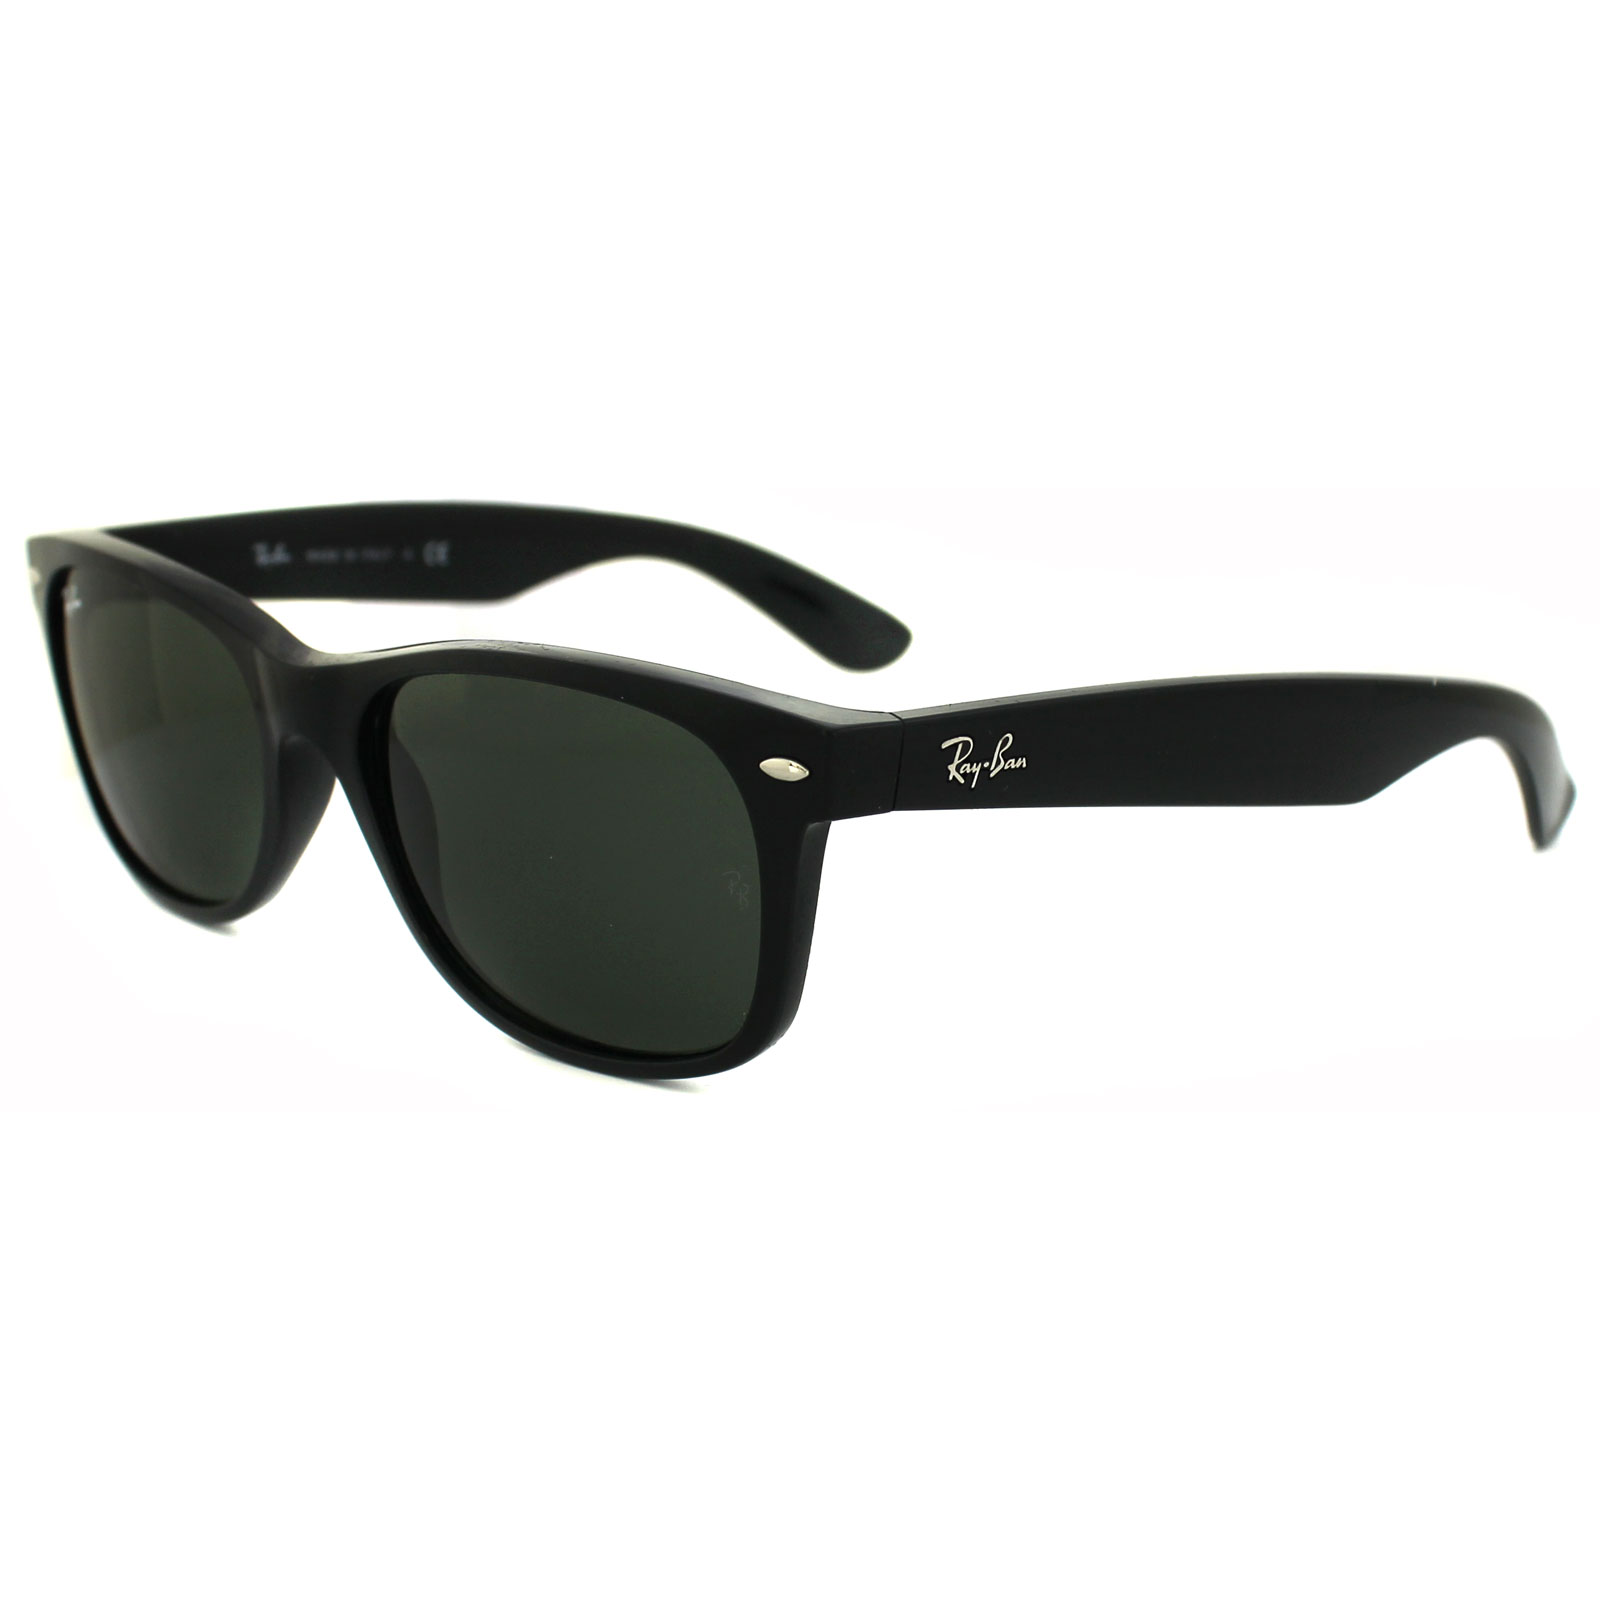 515e9b0262 Cheap Ray-Ban New Wayfarer 2132 Sunglasses - Discounted Sunglasses